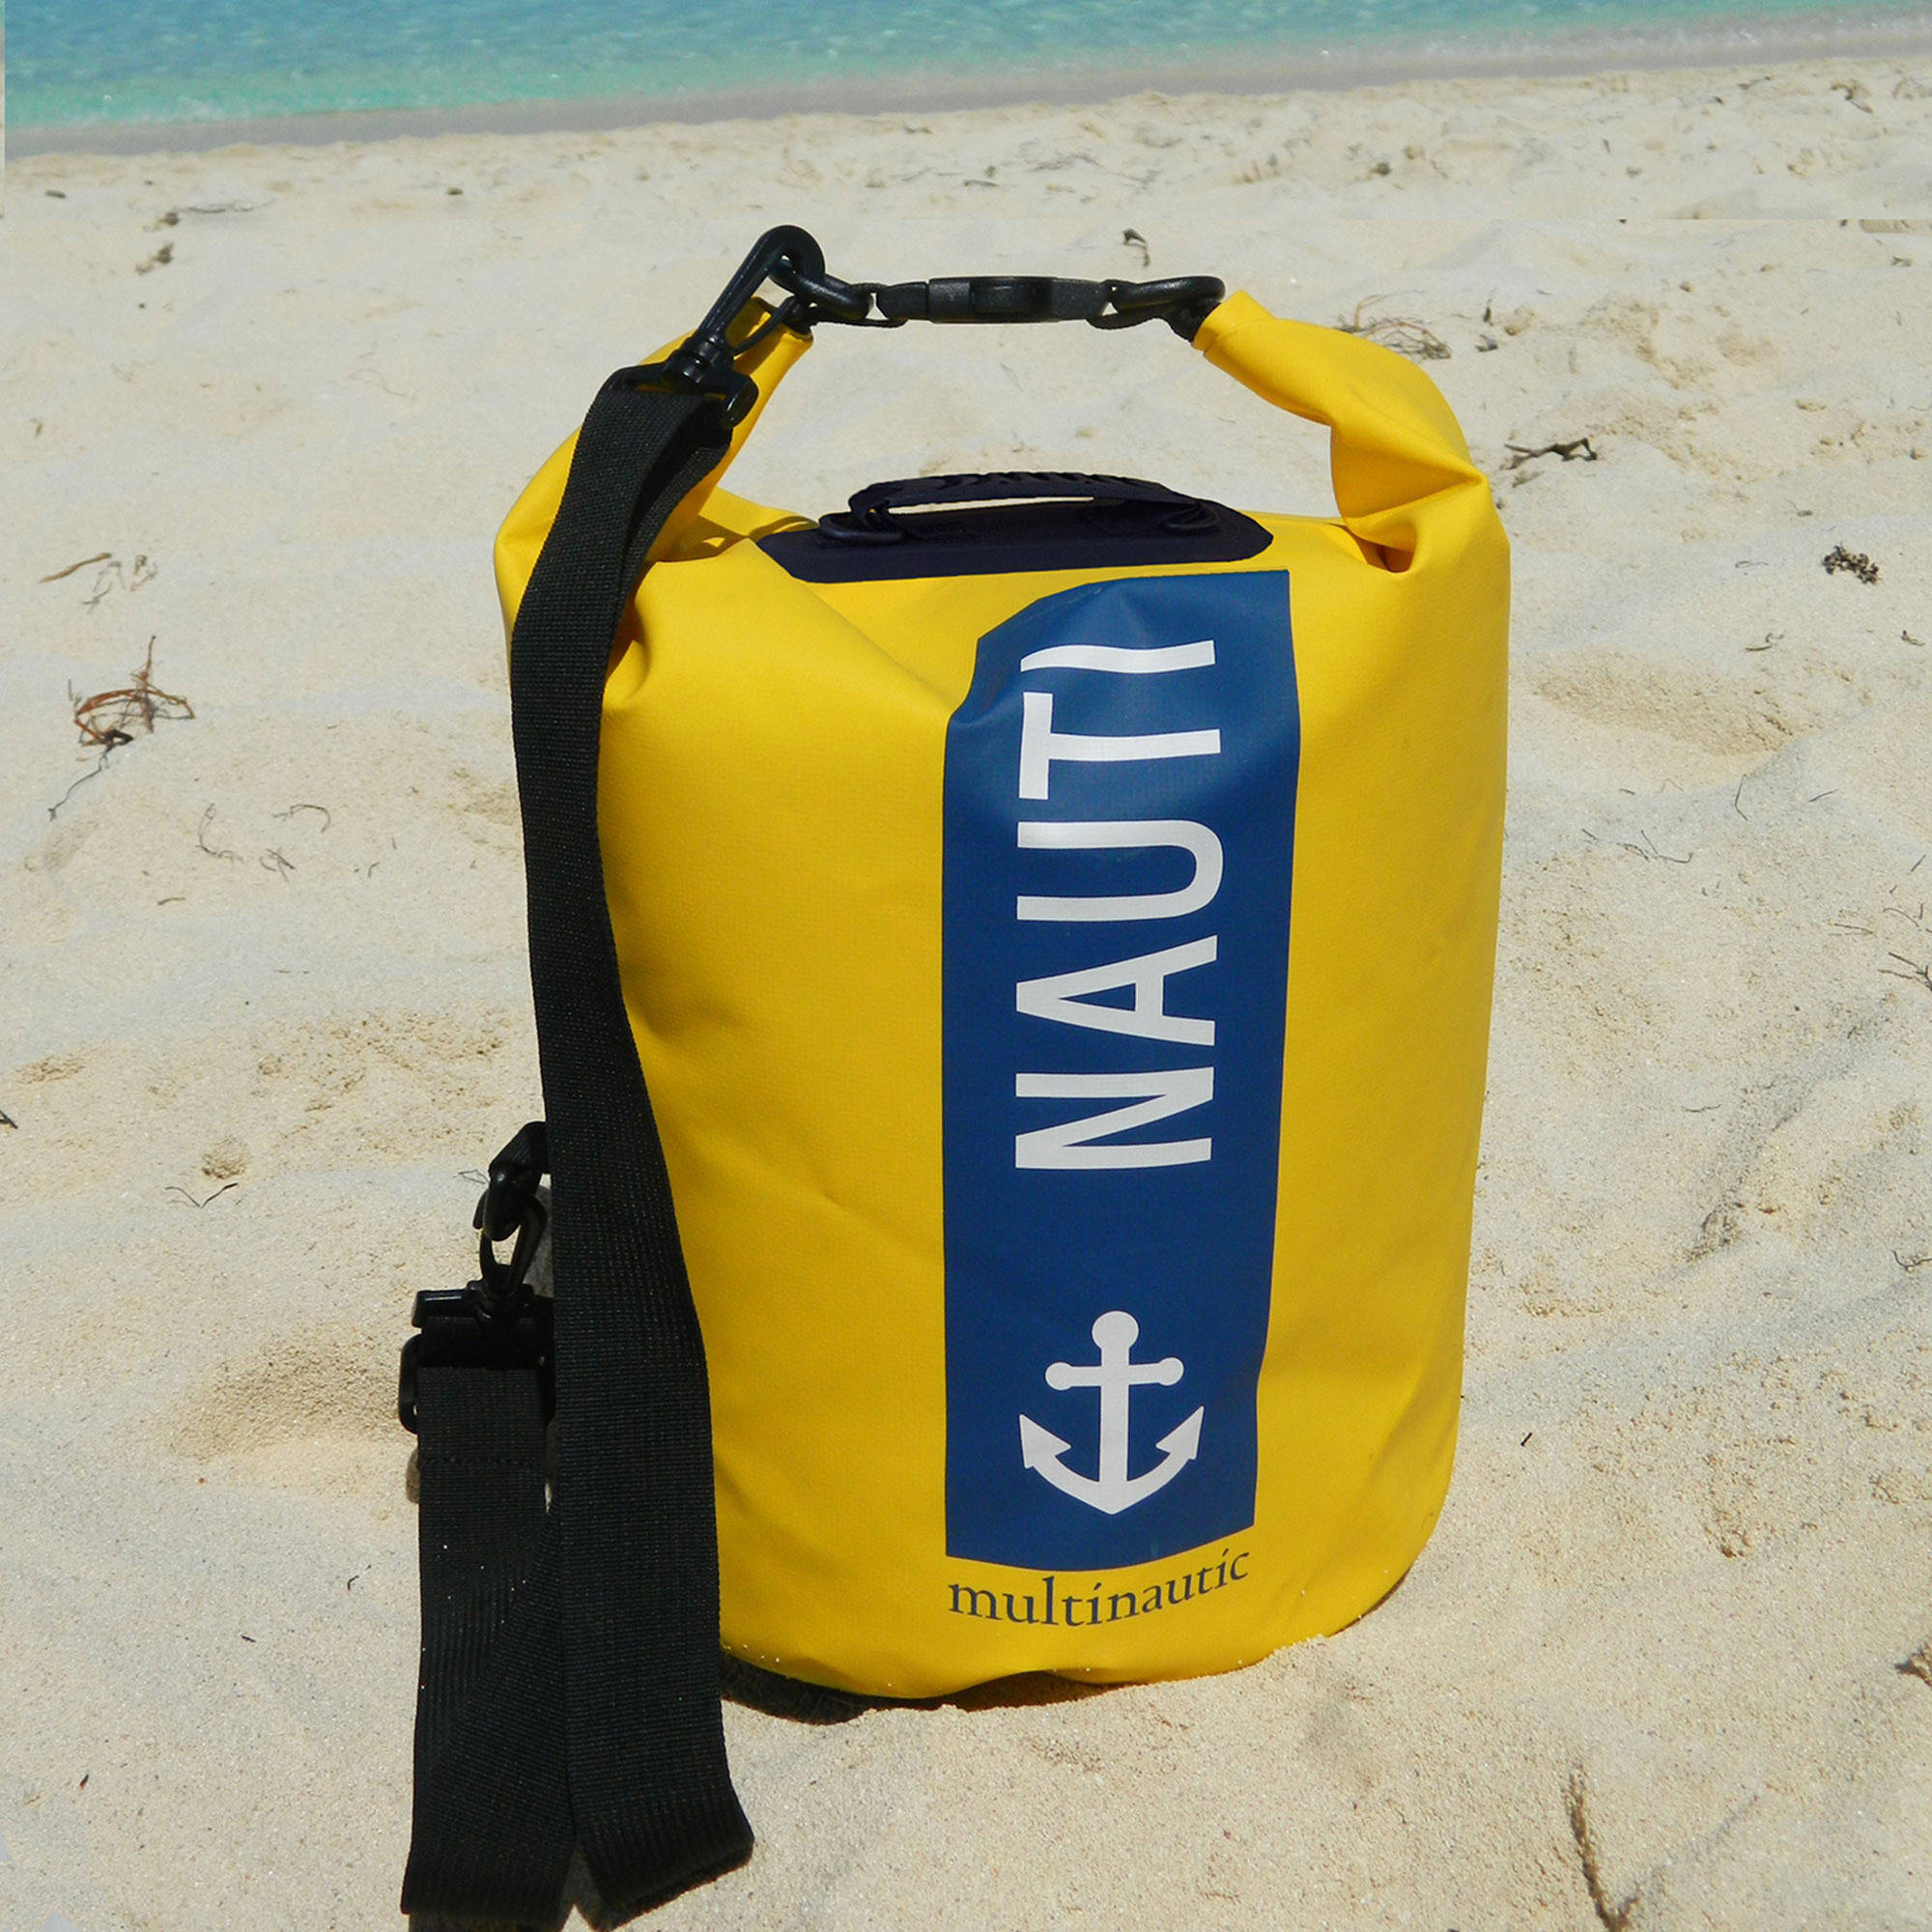 Multinautic Dry Bag, 20L